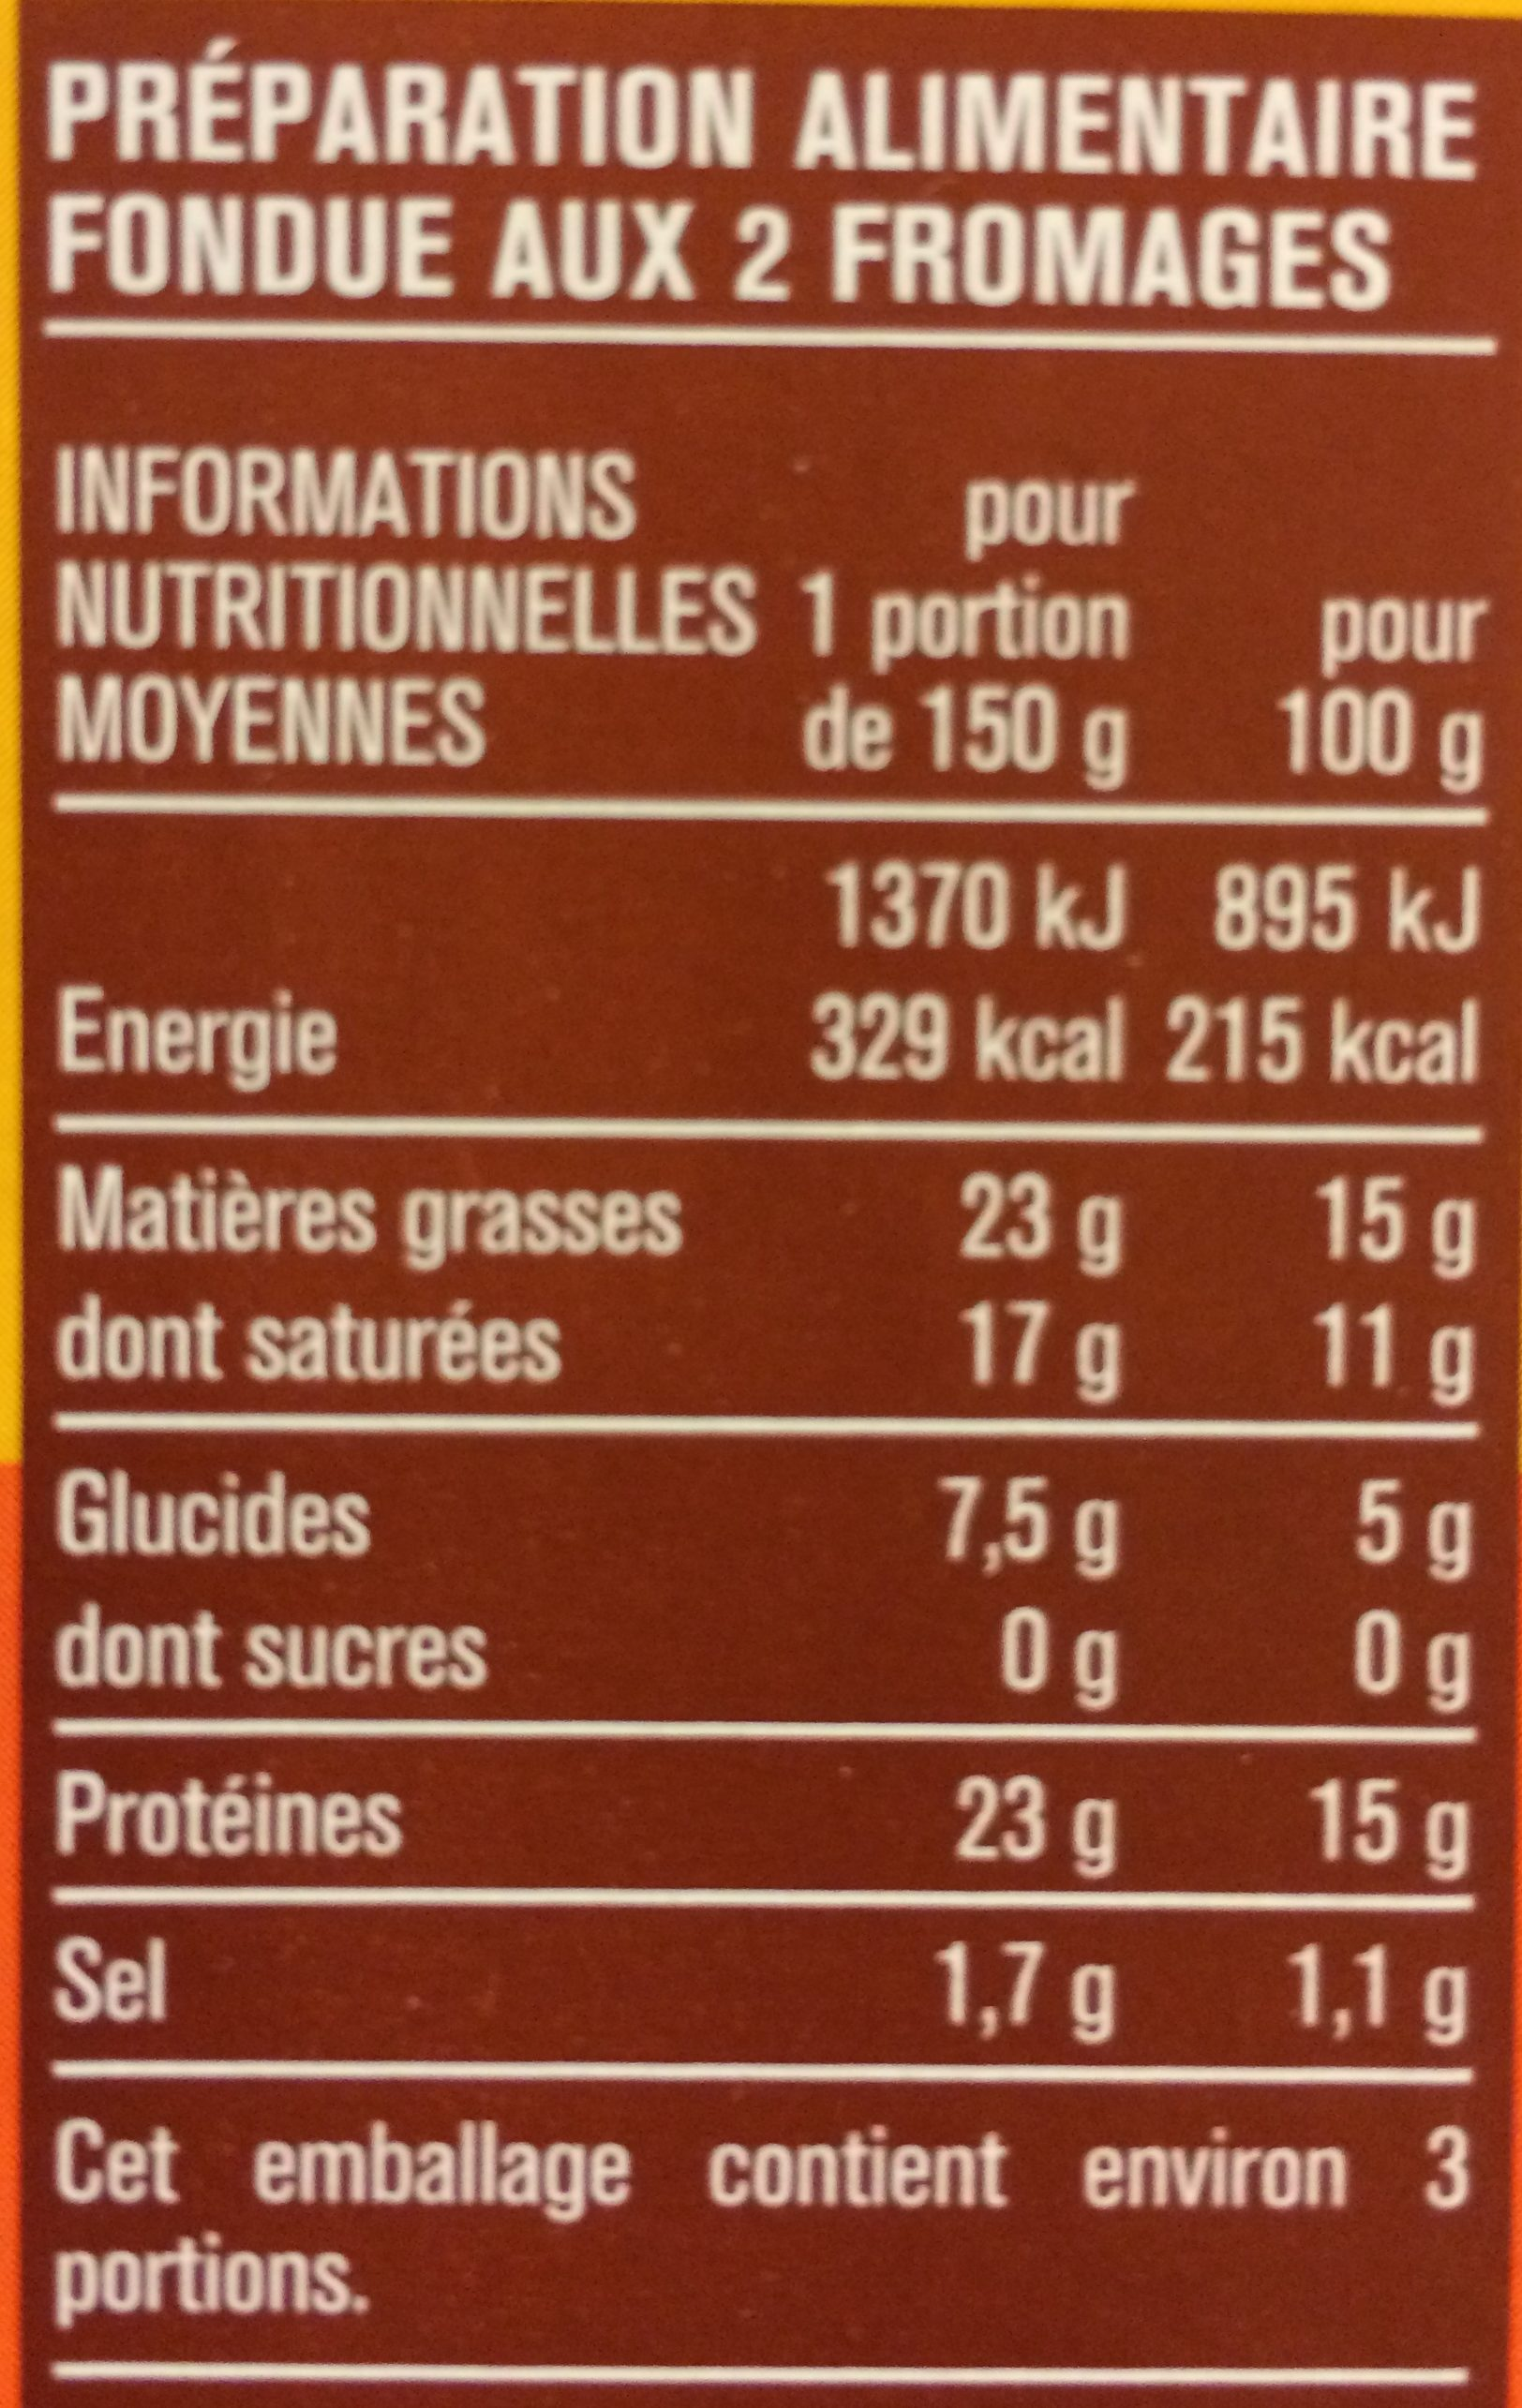 Fondue 2 Fromages - Nutrition facts - fr